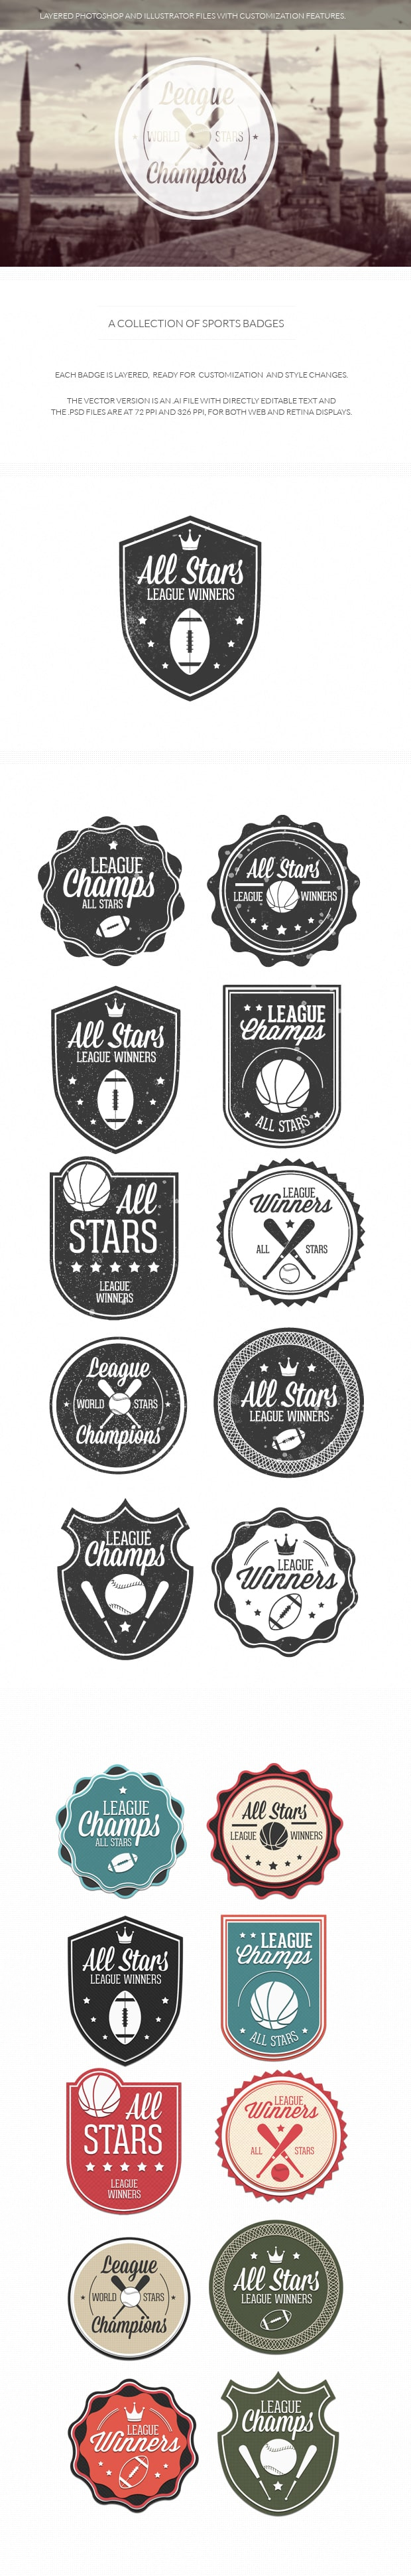 Sports Badges Vol 1 10